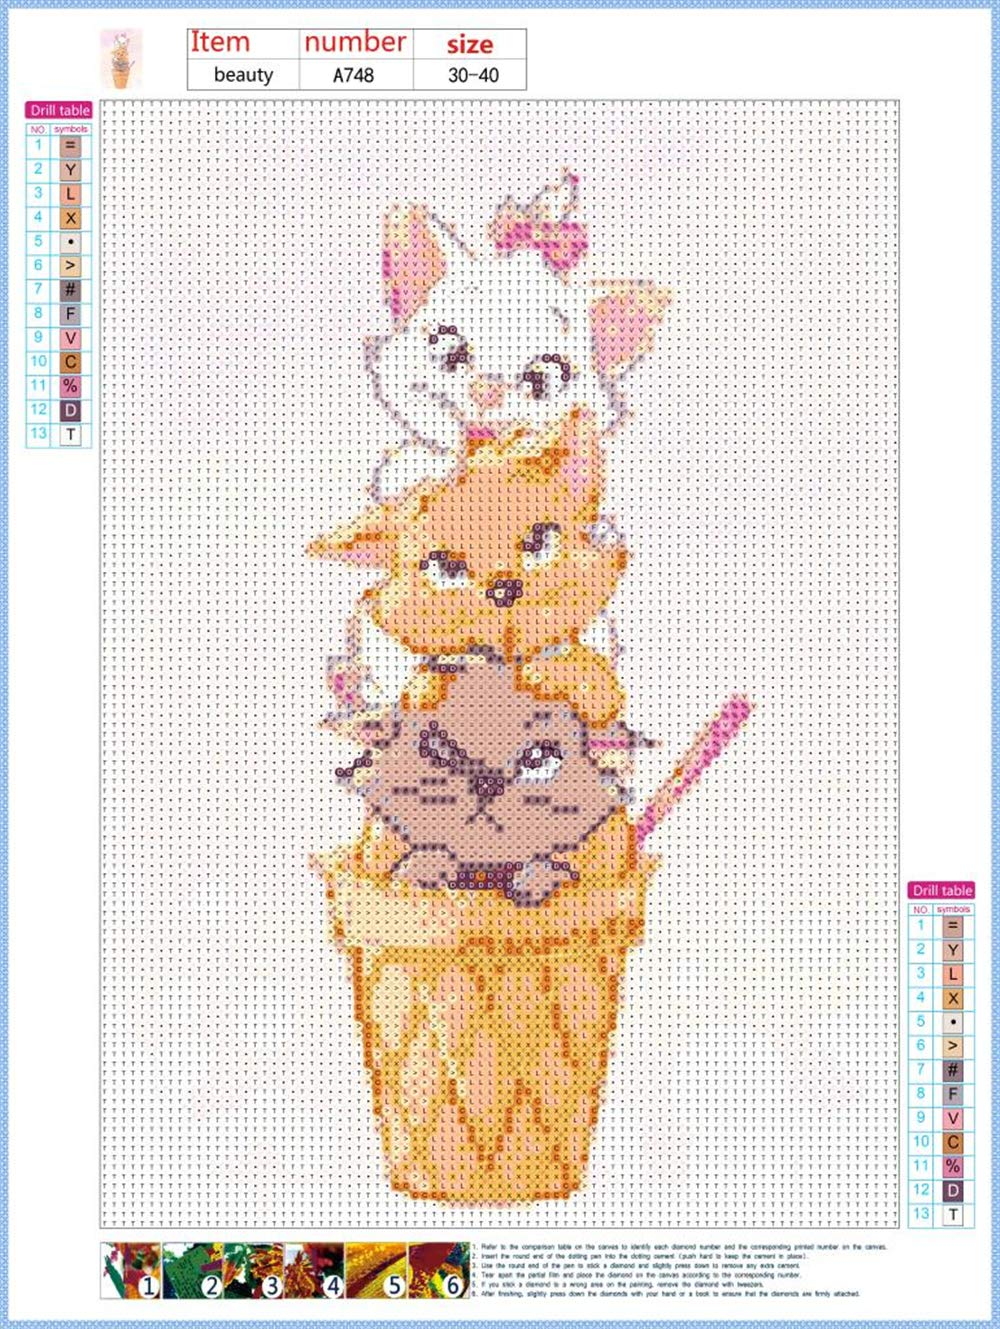 abd12c244f Diamond Painting Kits for Adults Cat,5D Diamond Painting Kits Full Drill,DIY  Diamond Art Rhinestone Embroidery Cross Stitch Kits Supply Arts Craft  Canvas ...